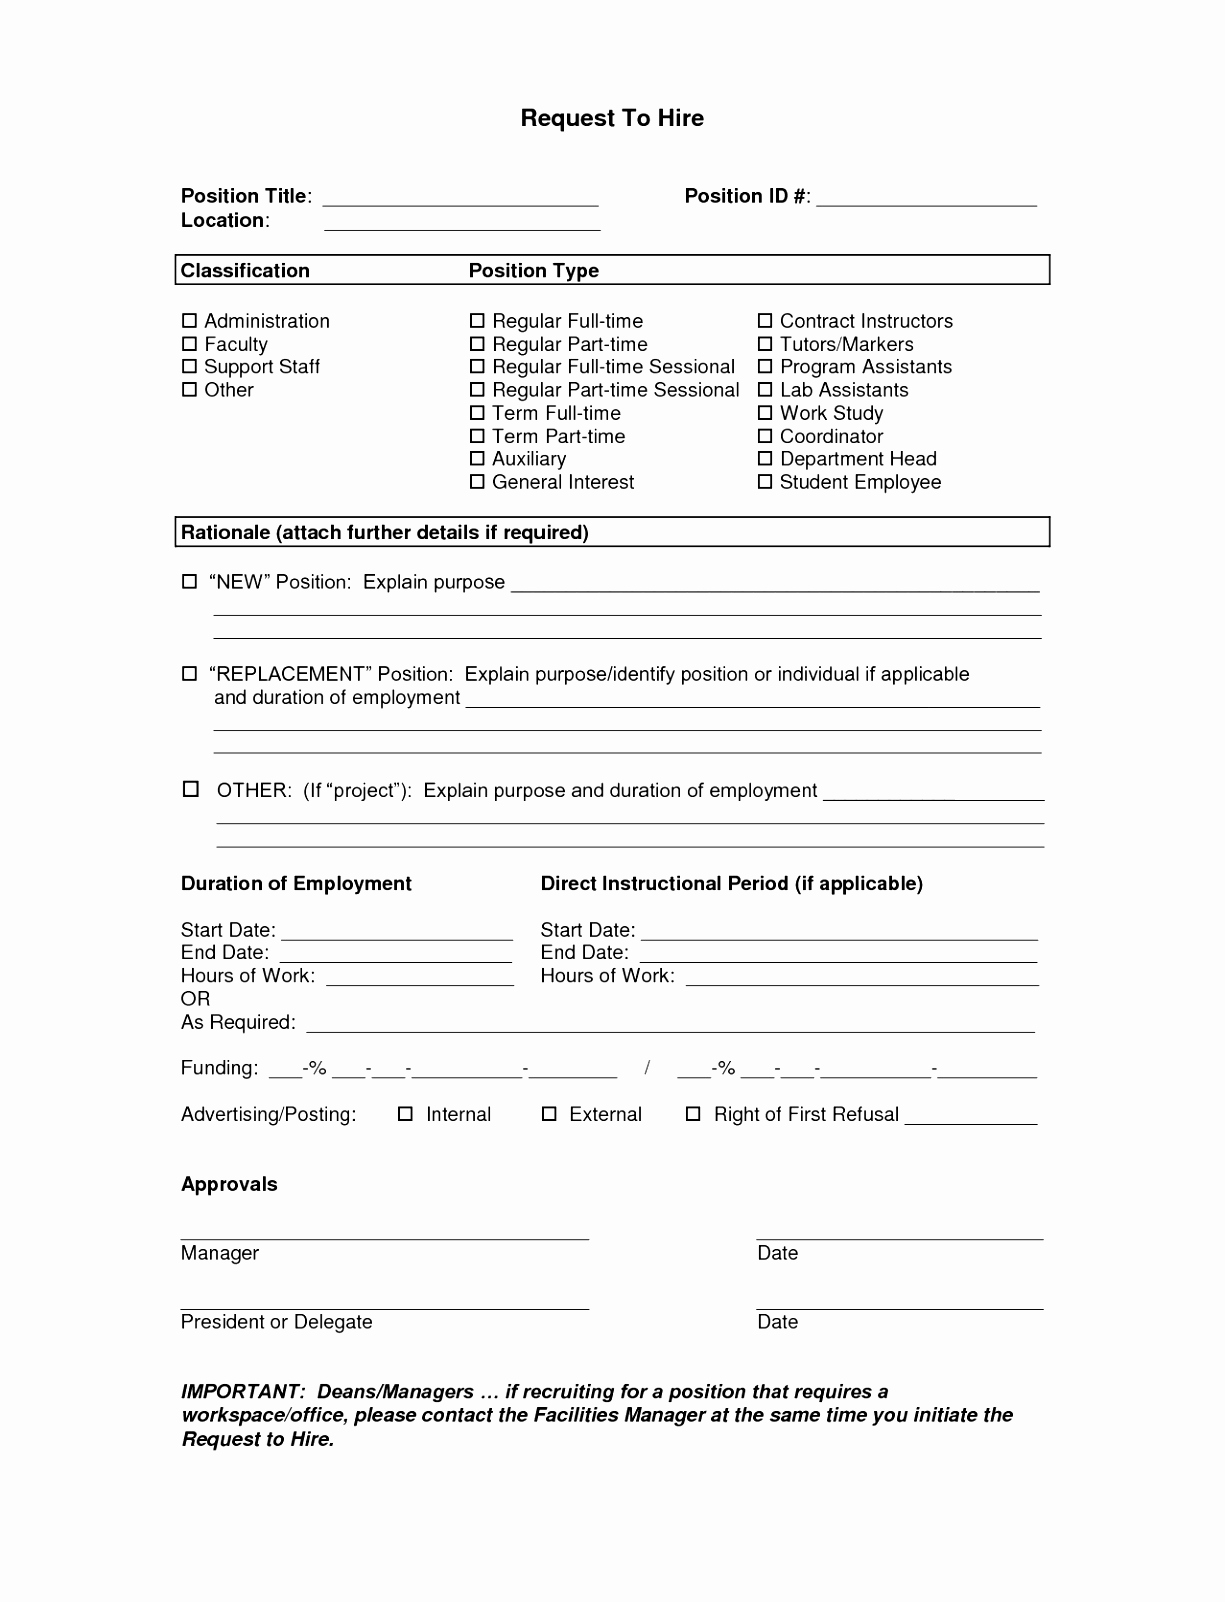 New Hire forms Template Awesome 6 New Hire forms Template Euyru